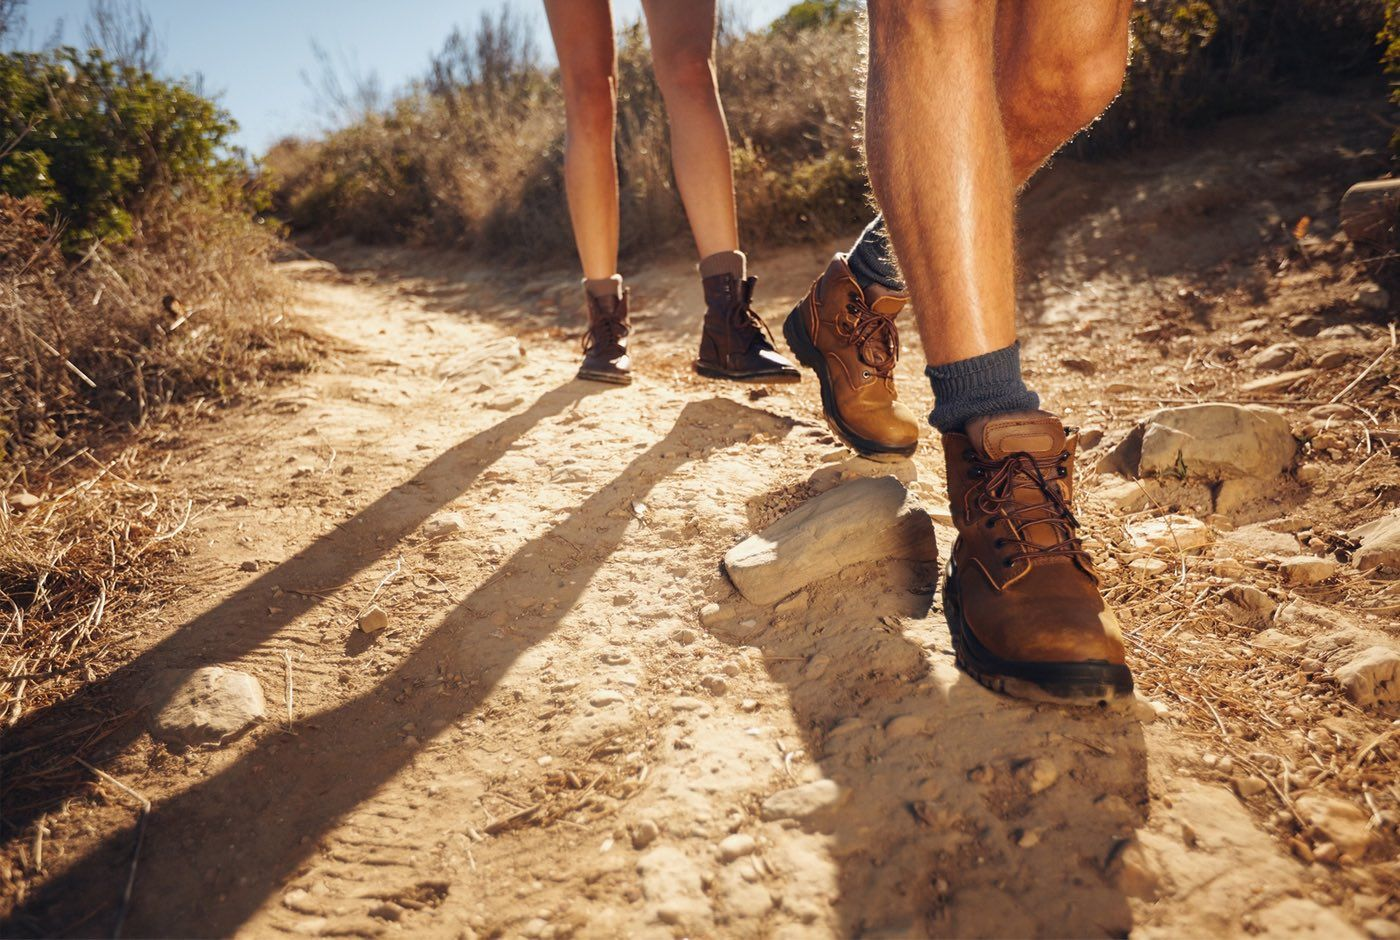 Boots and Shoes for Trekking and Hiking: learn how to choose